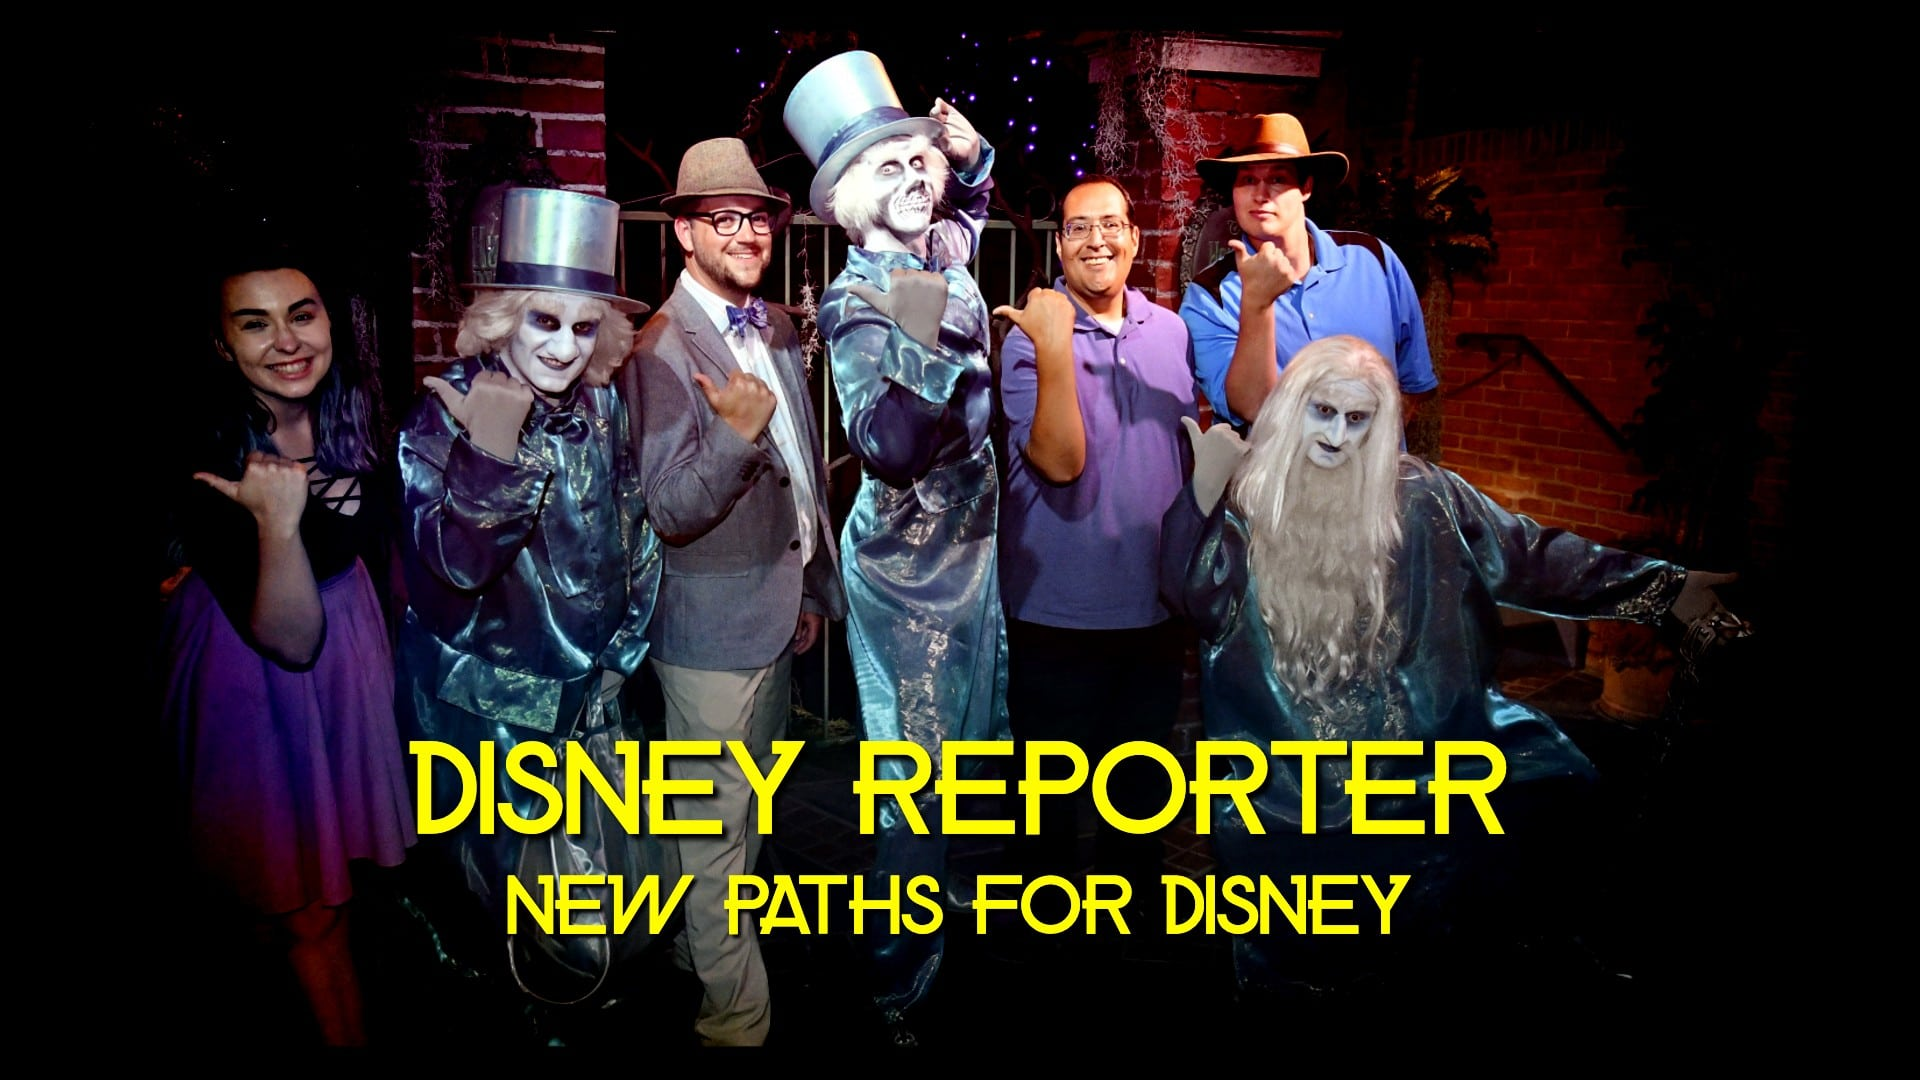 New Paths for Disney - DISNEY Reporter